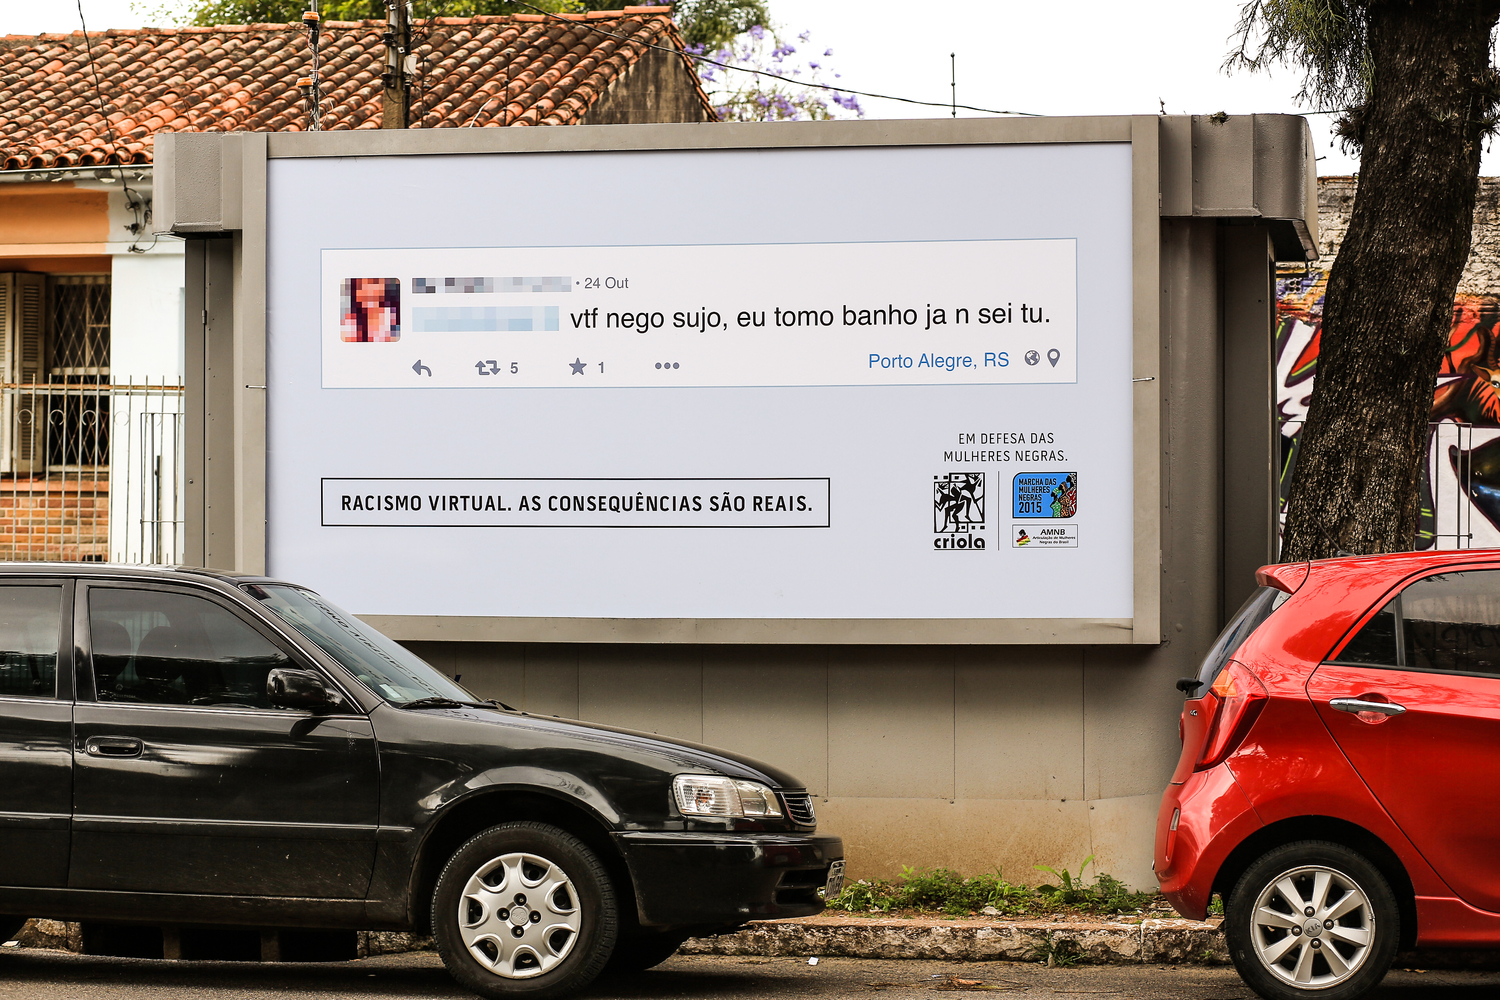 group-fights-online-racism-using-billboards-2